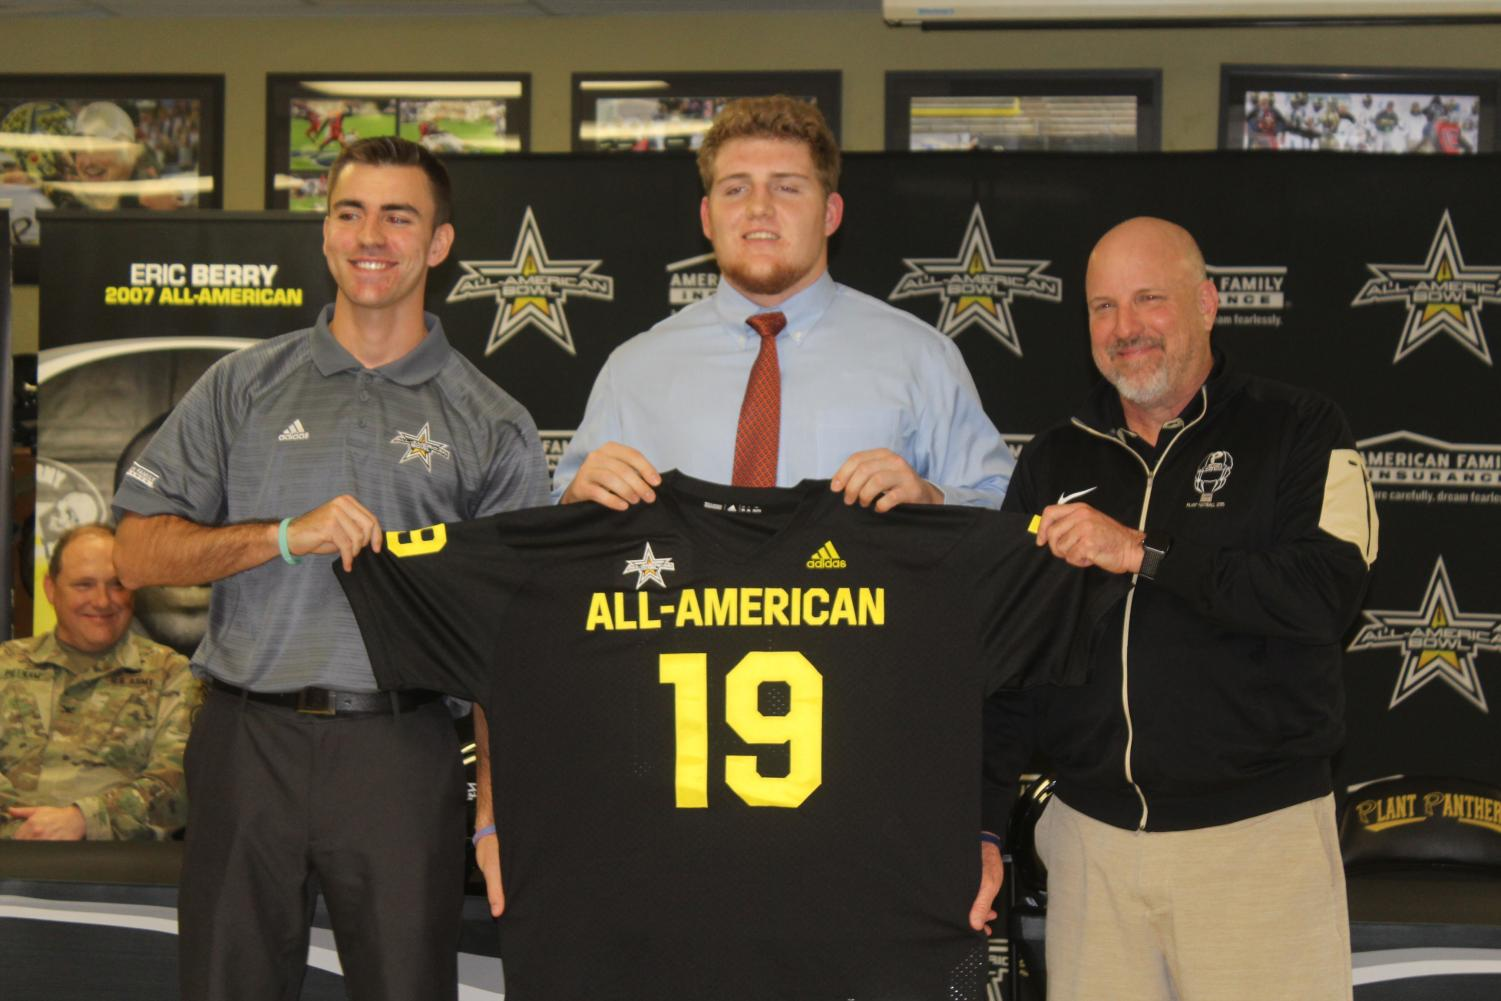 Four-star senior offensive lineman William Putnam stands in front of his teammates as the U.S. Army All-American Bowl representative presents him his jersey for the U.S. Army All-American bowl game.  Putnam was selected as one of the top 100 senior football players in the nation and will partake in the U.S. Army All-American Bowl game Jan. 5 in the Alamodome in San Antonio.